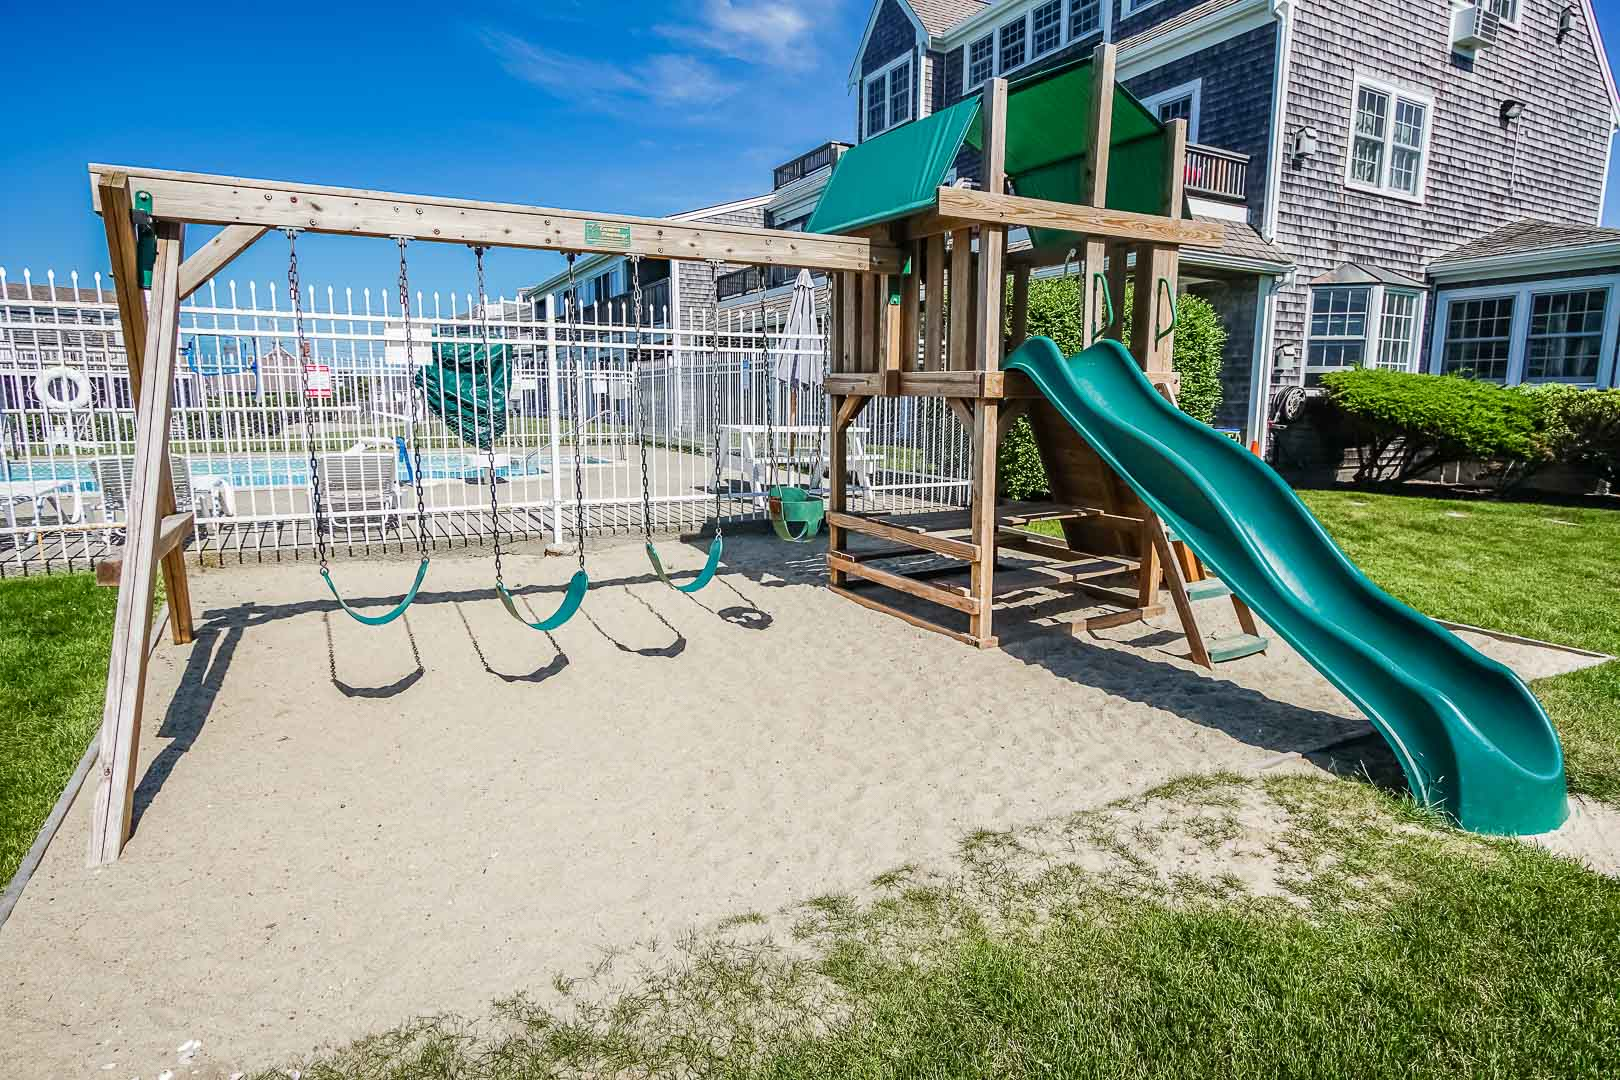 A lovely playground at VRI's Beachside Village Resort in Massachusetts.